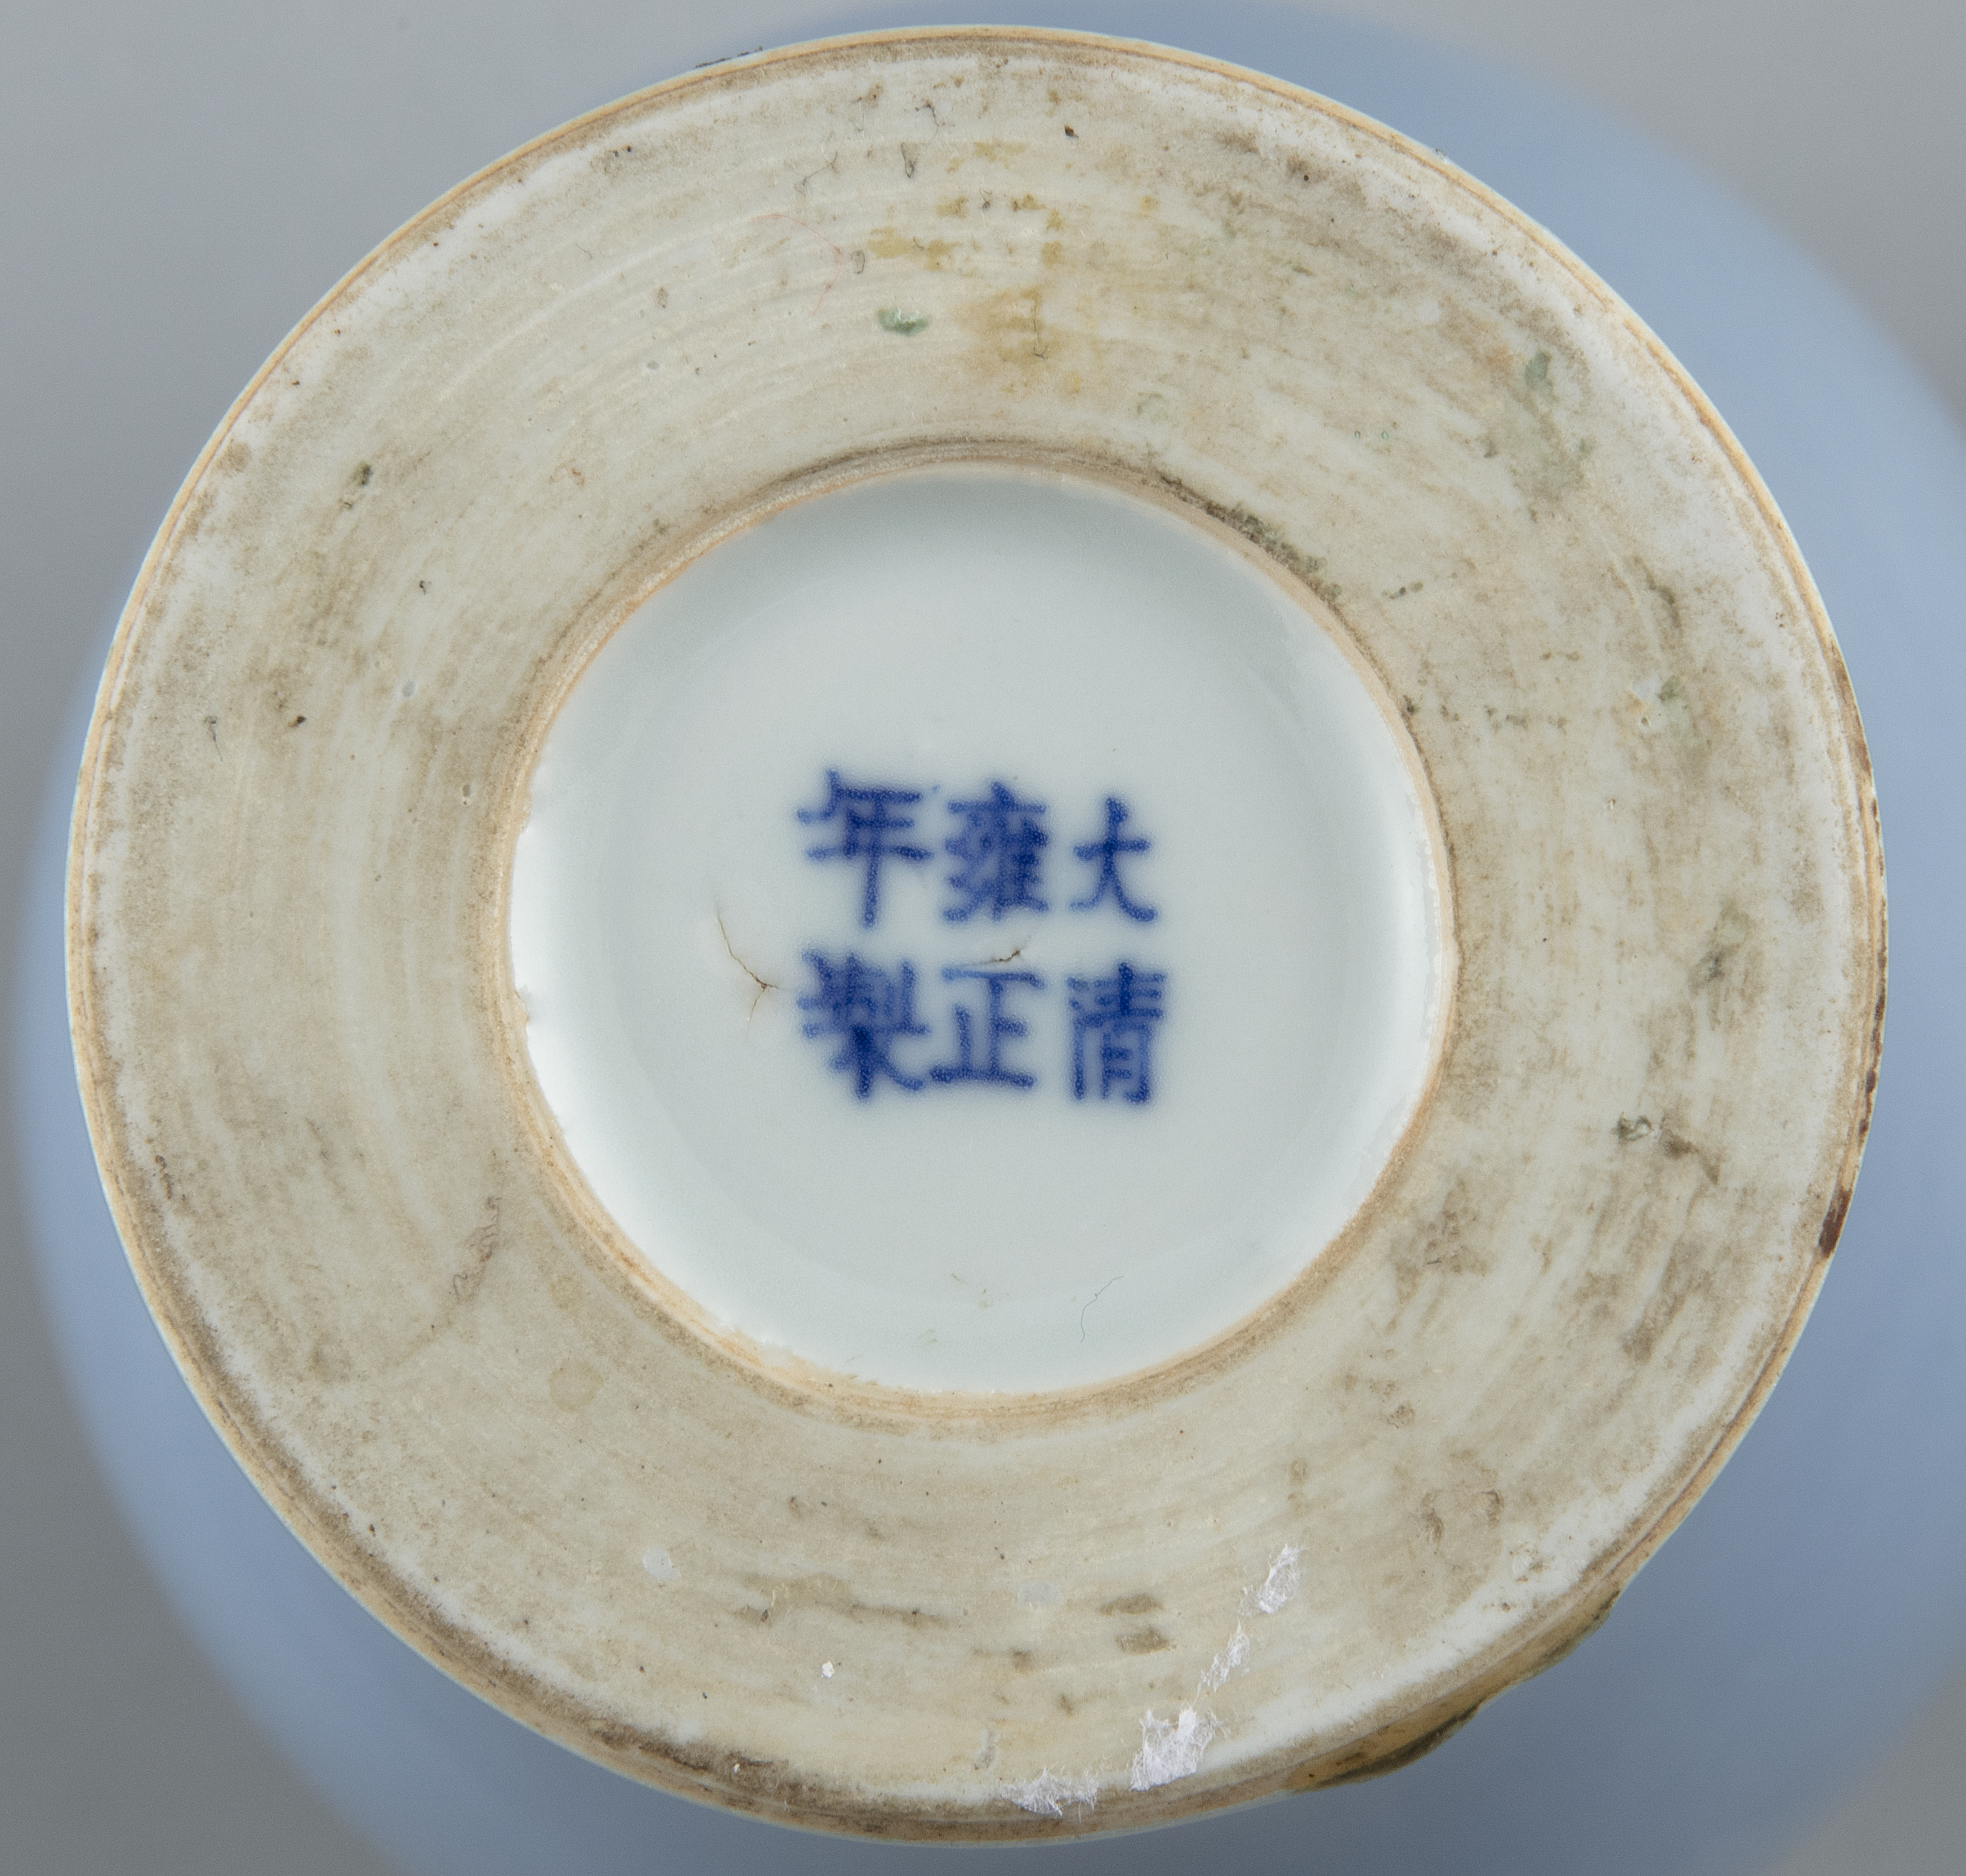 A CLAIR DE LUNE GLAZED PORCELAIN MEIPING VASE China, Qing Dynasty The below inscribed with the - Image 7 of 11